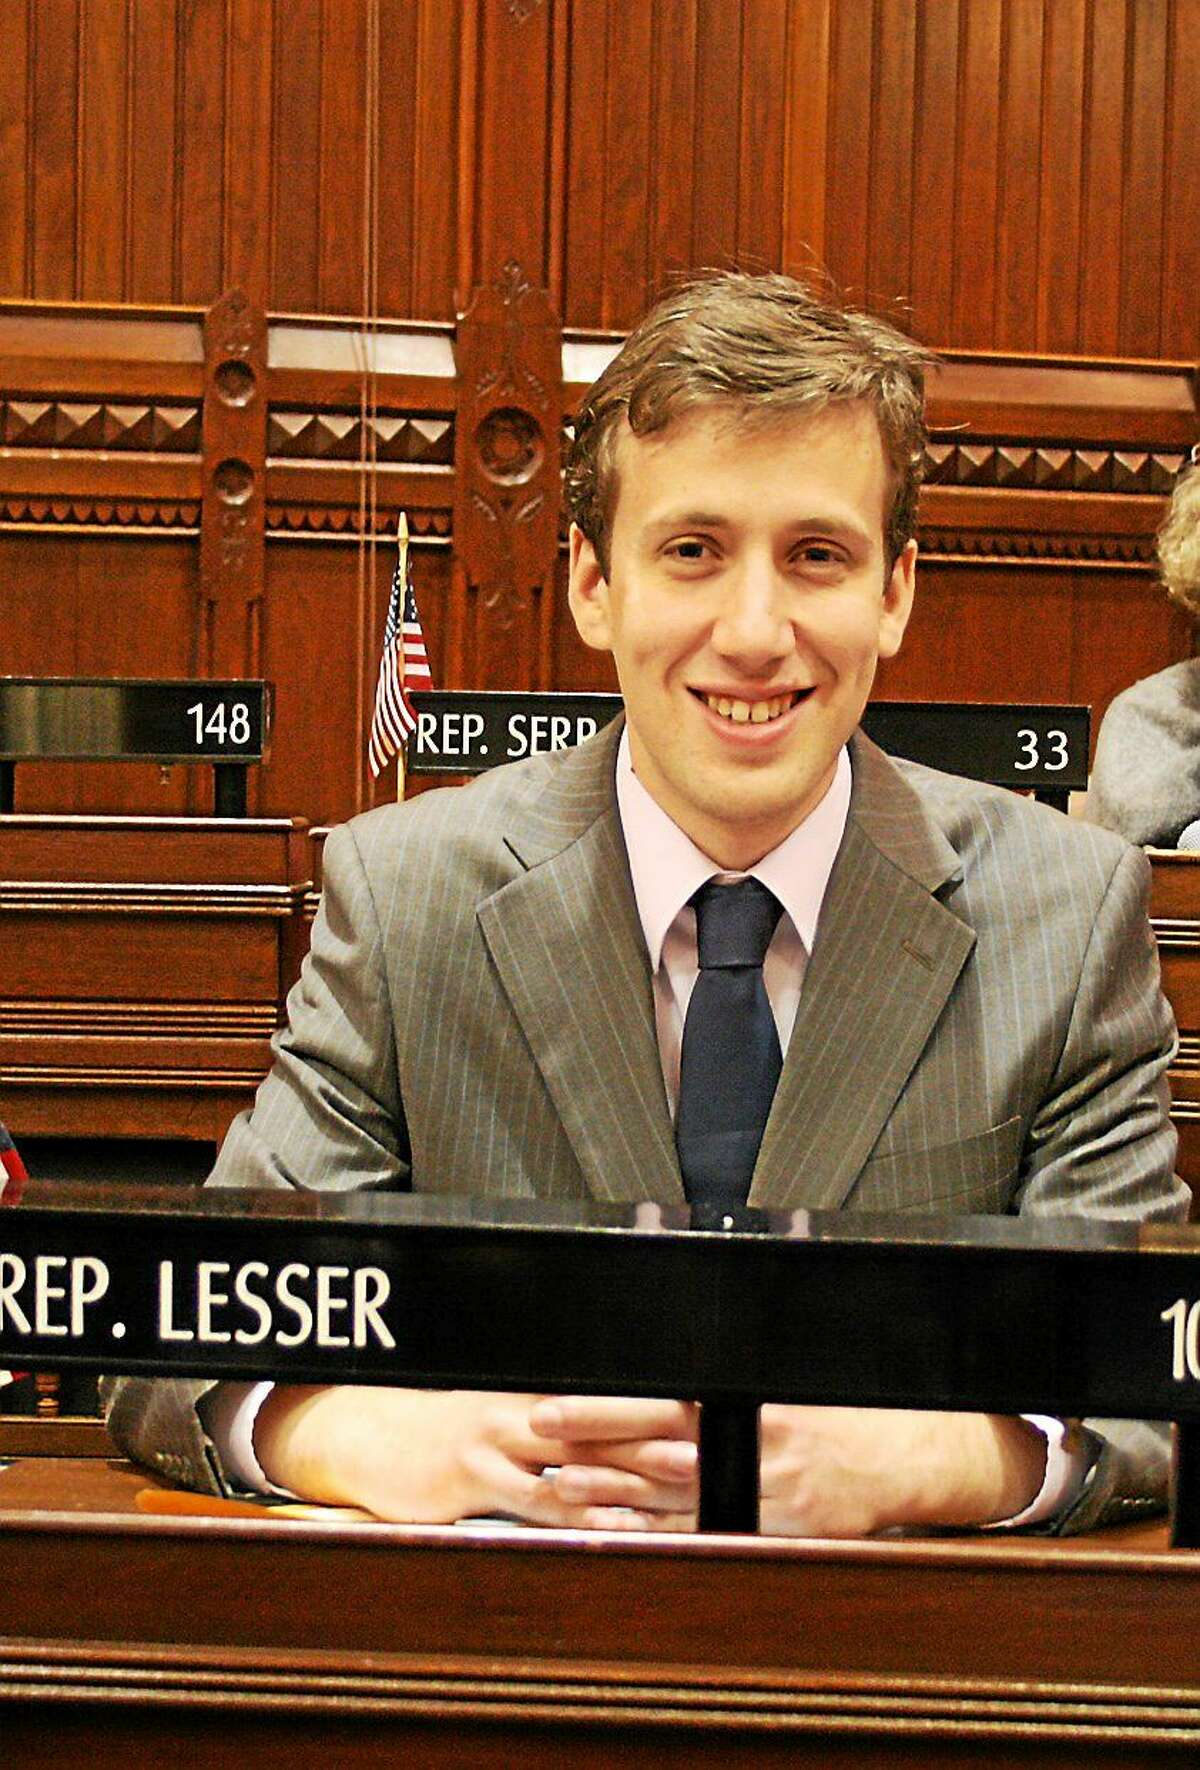 State Rep. Matthew Lesser of Middletown